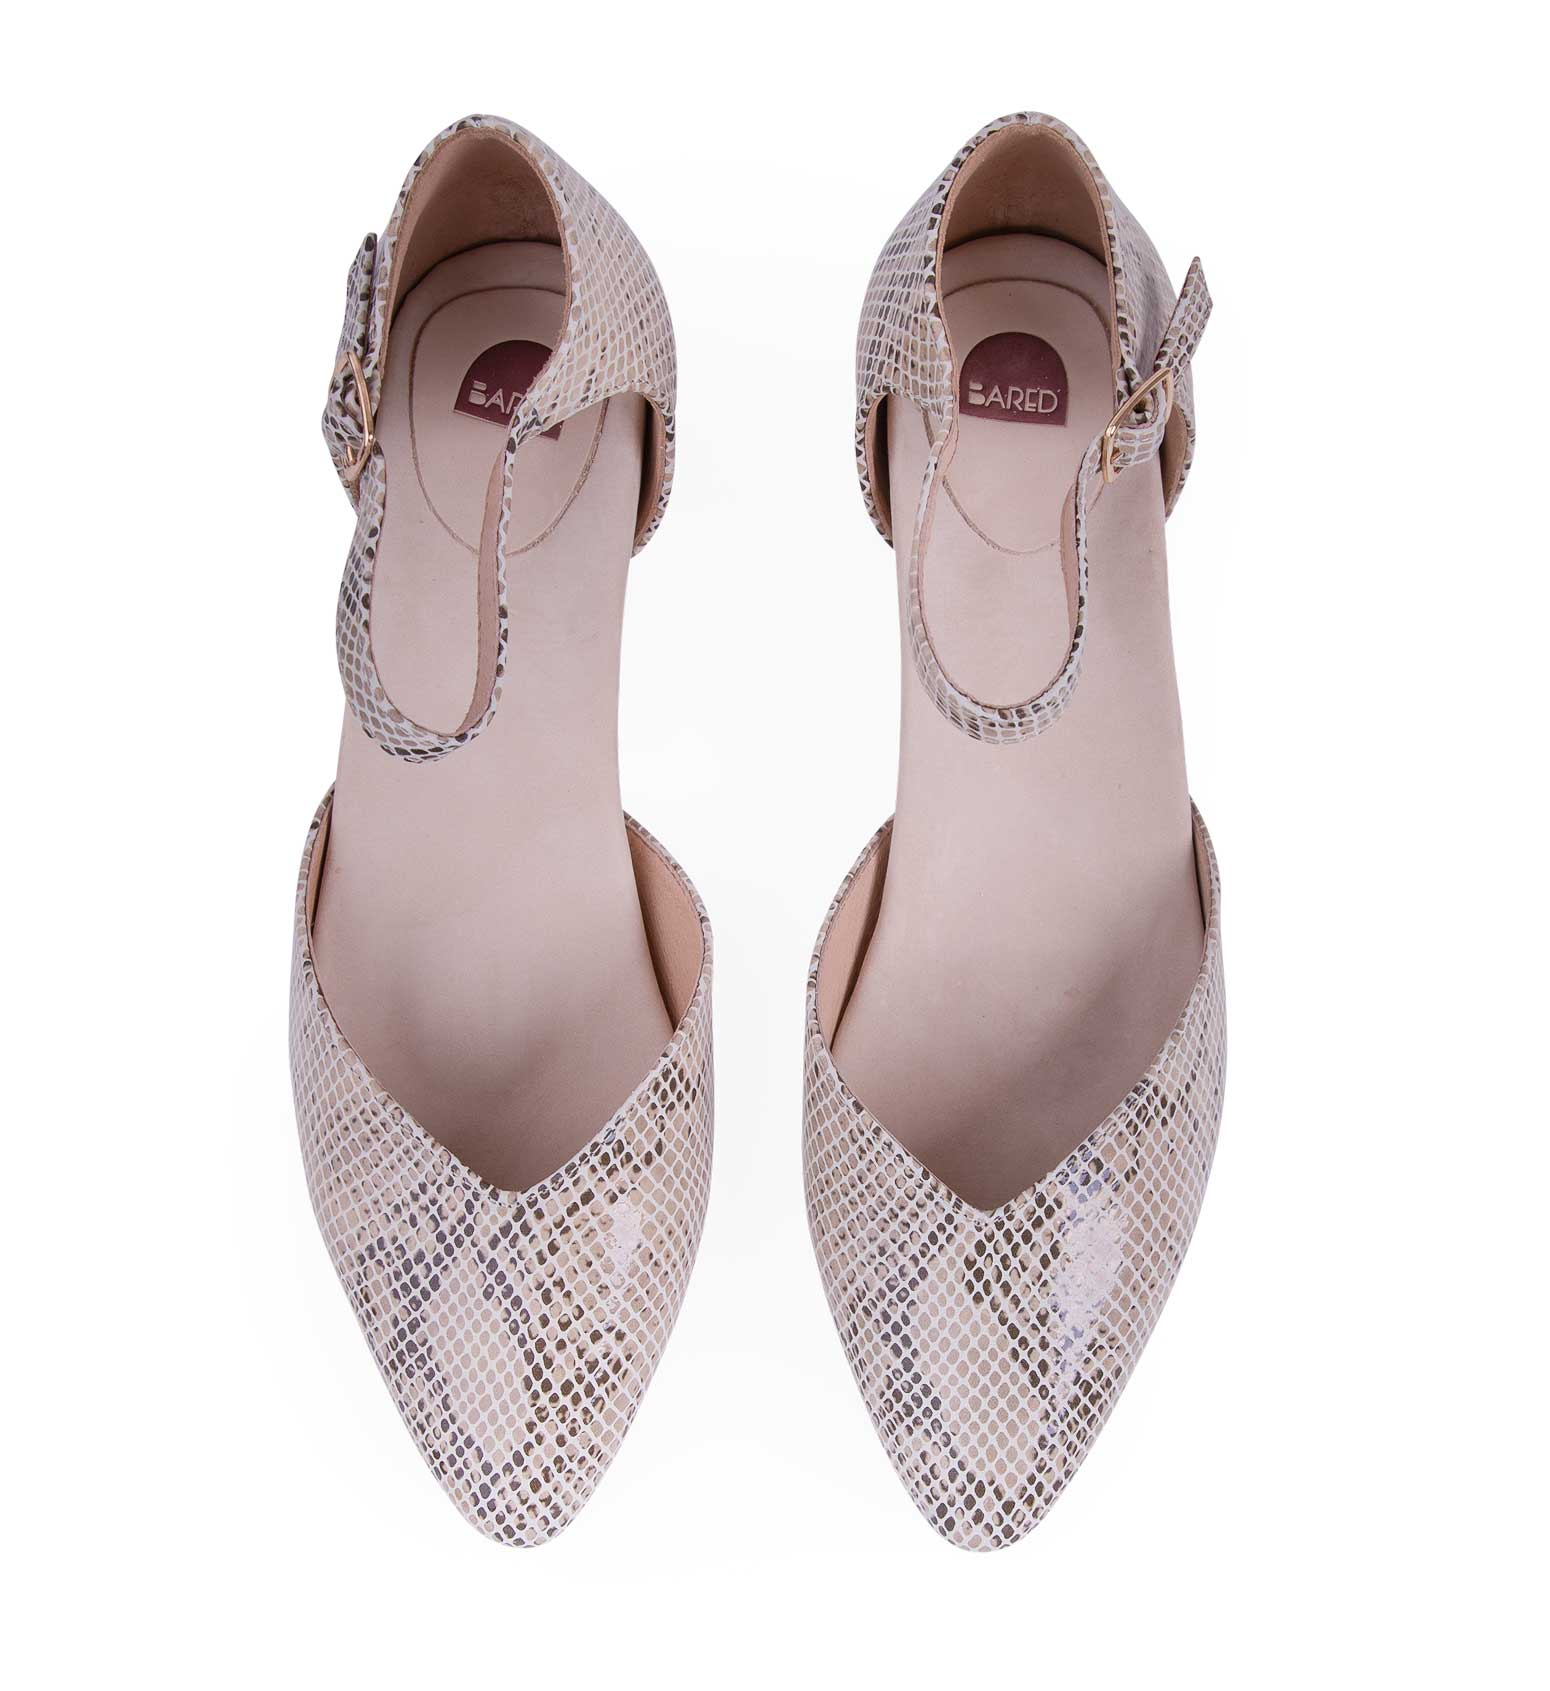 bc1ad4cfcb257 Bared Shoes  A revolution in footwear. Men s and women s shoes designed by a  podiatrist.